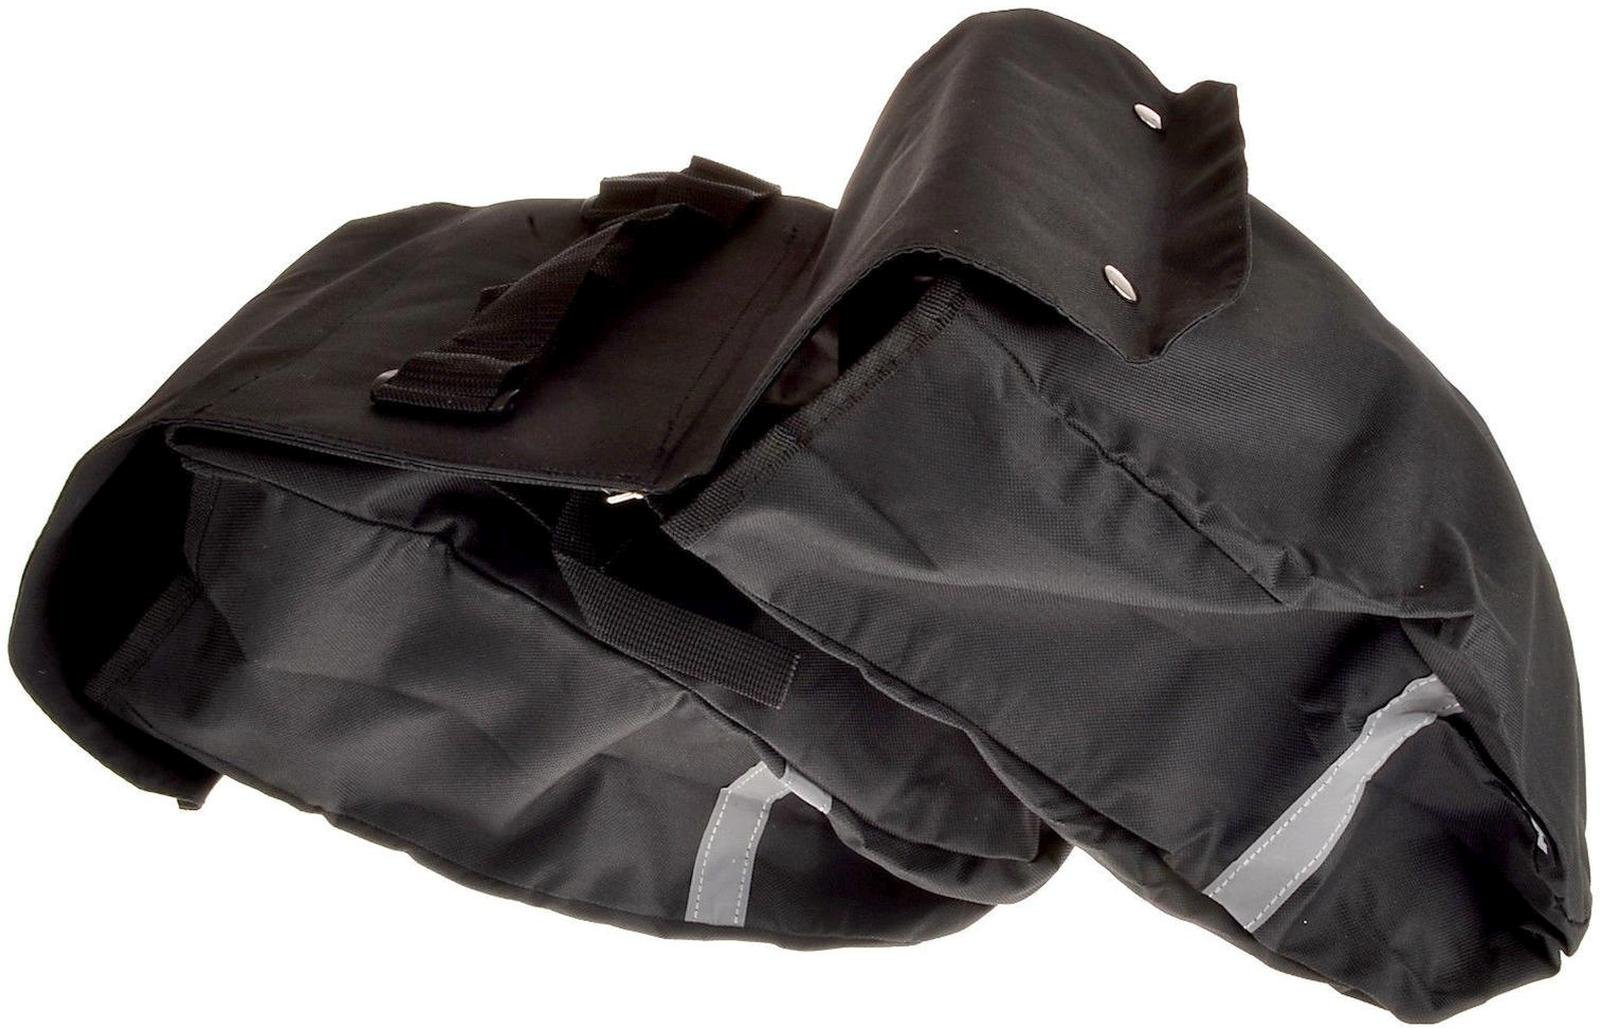 Huffy Cruiser Rollup Rear Pannier Bag Black by HUFY (Image #4)